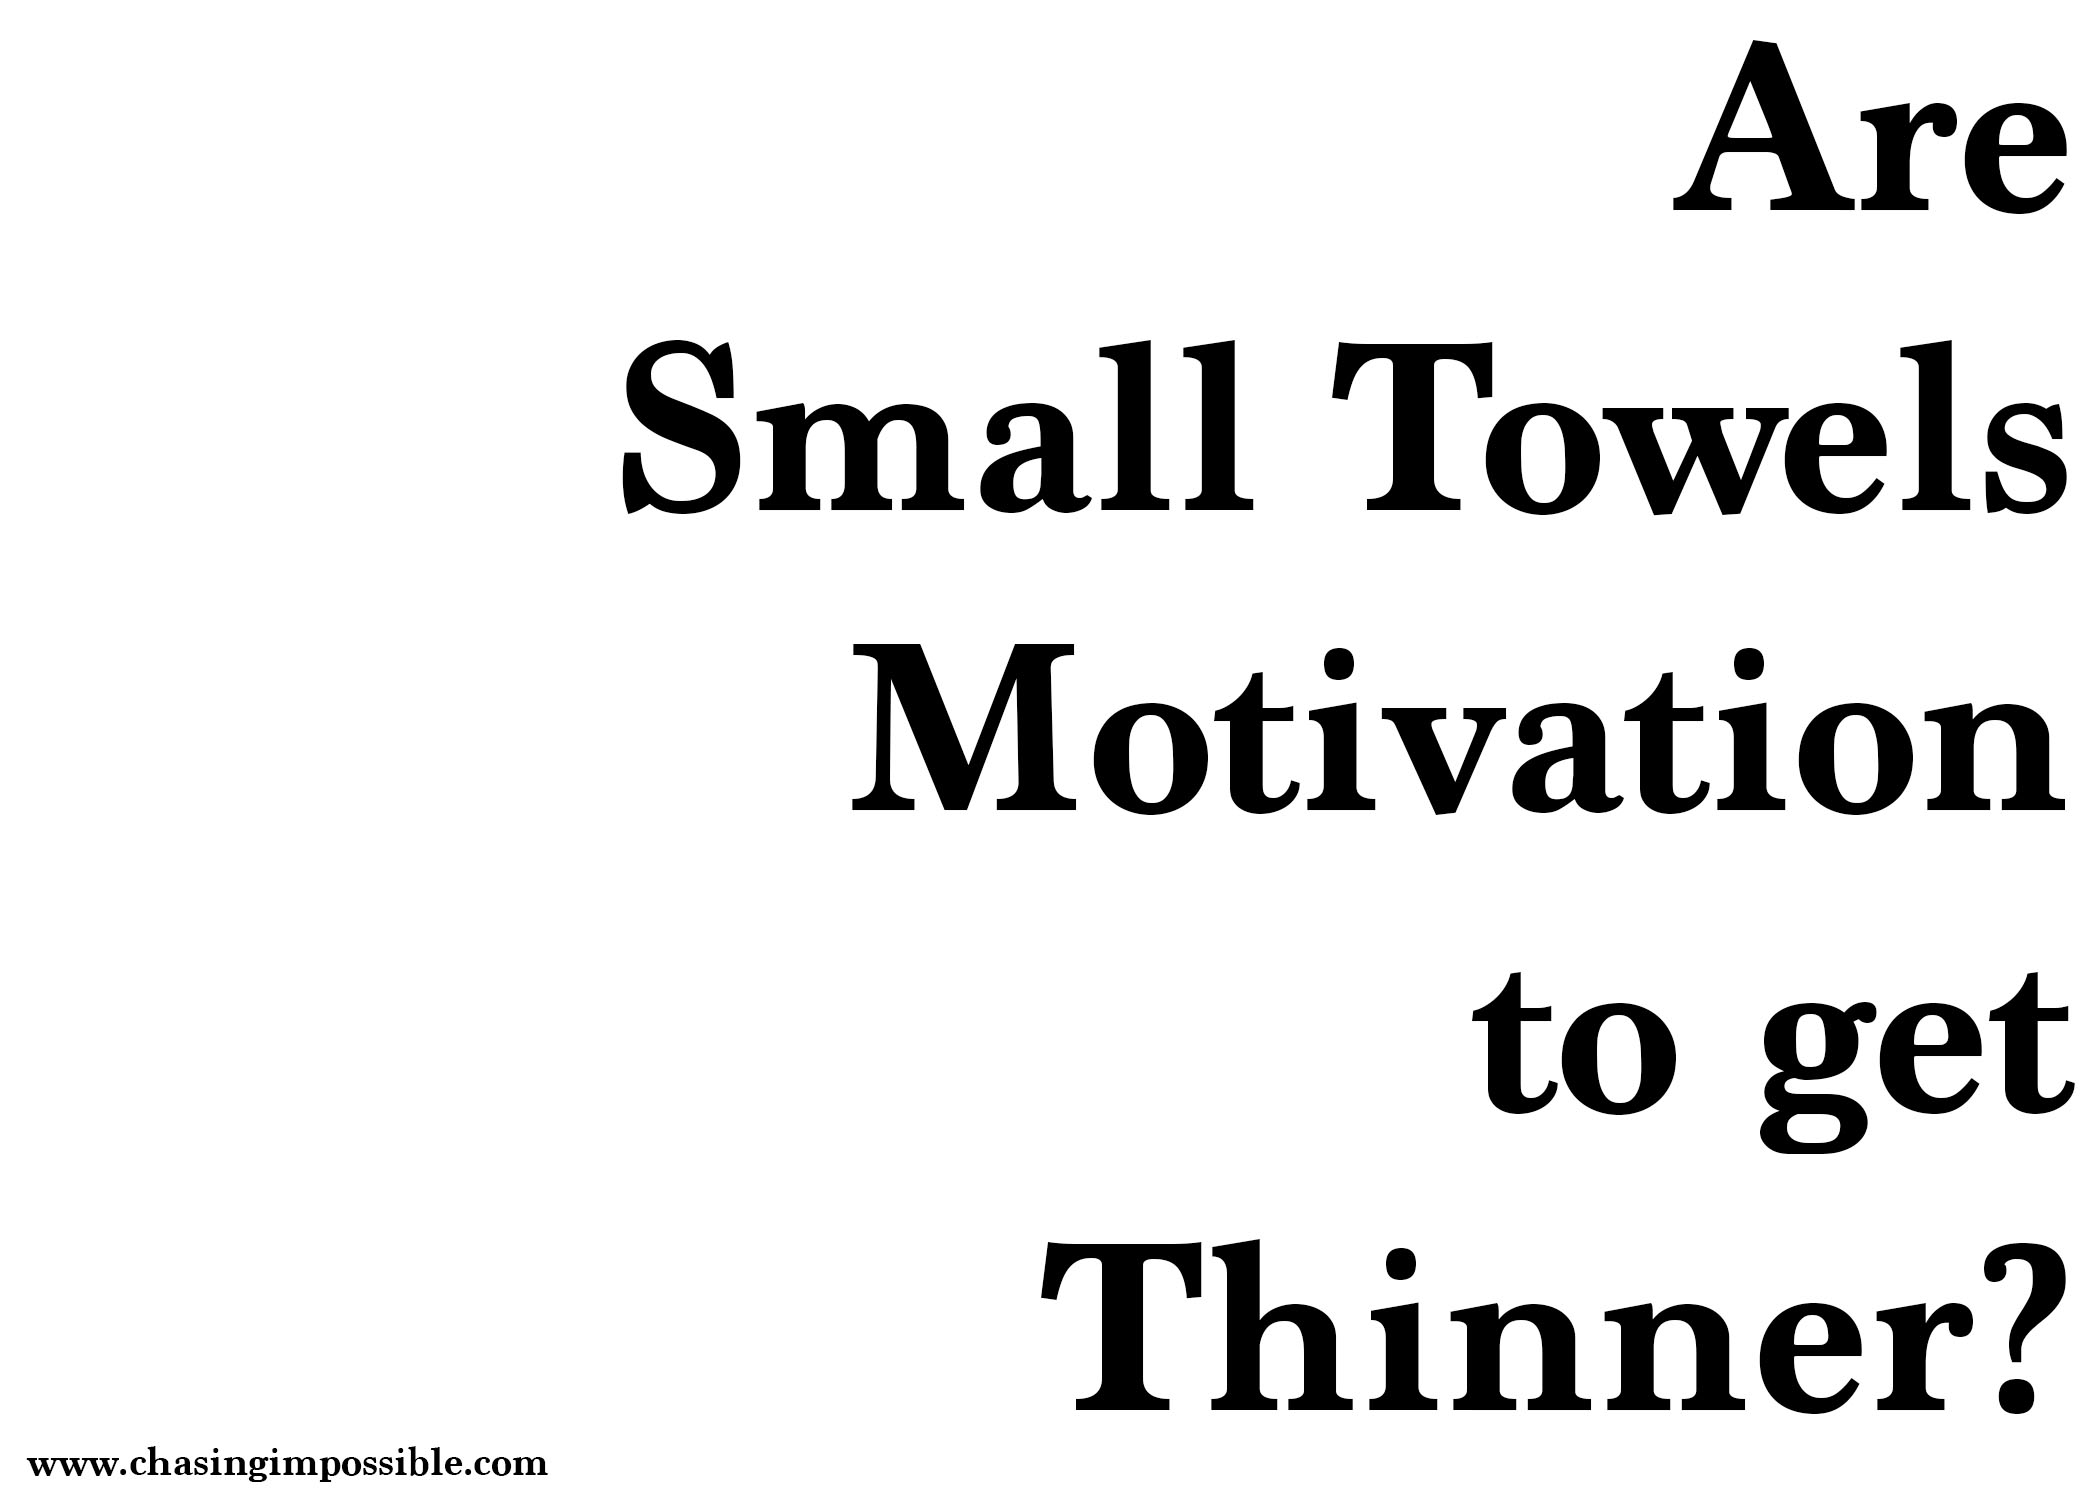 Are small towels motivation to get thinner?